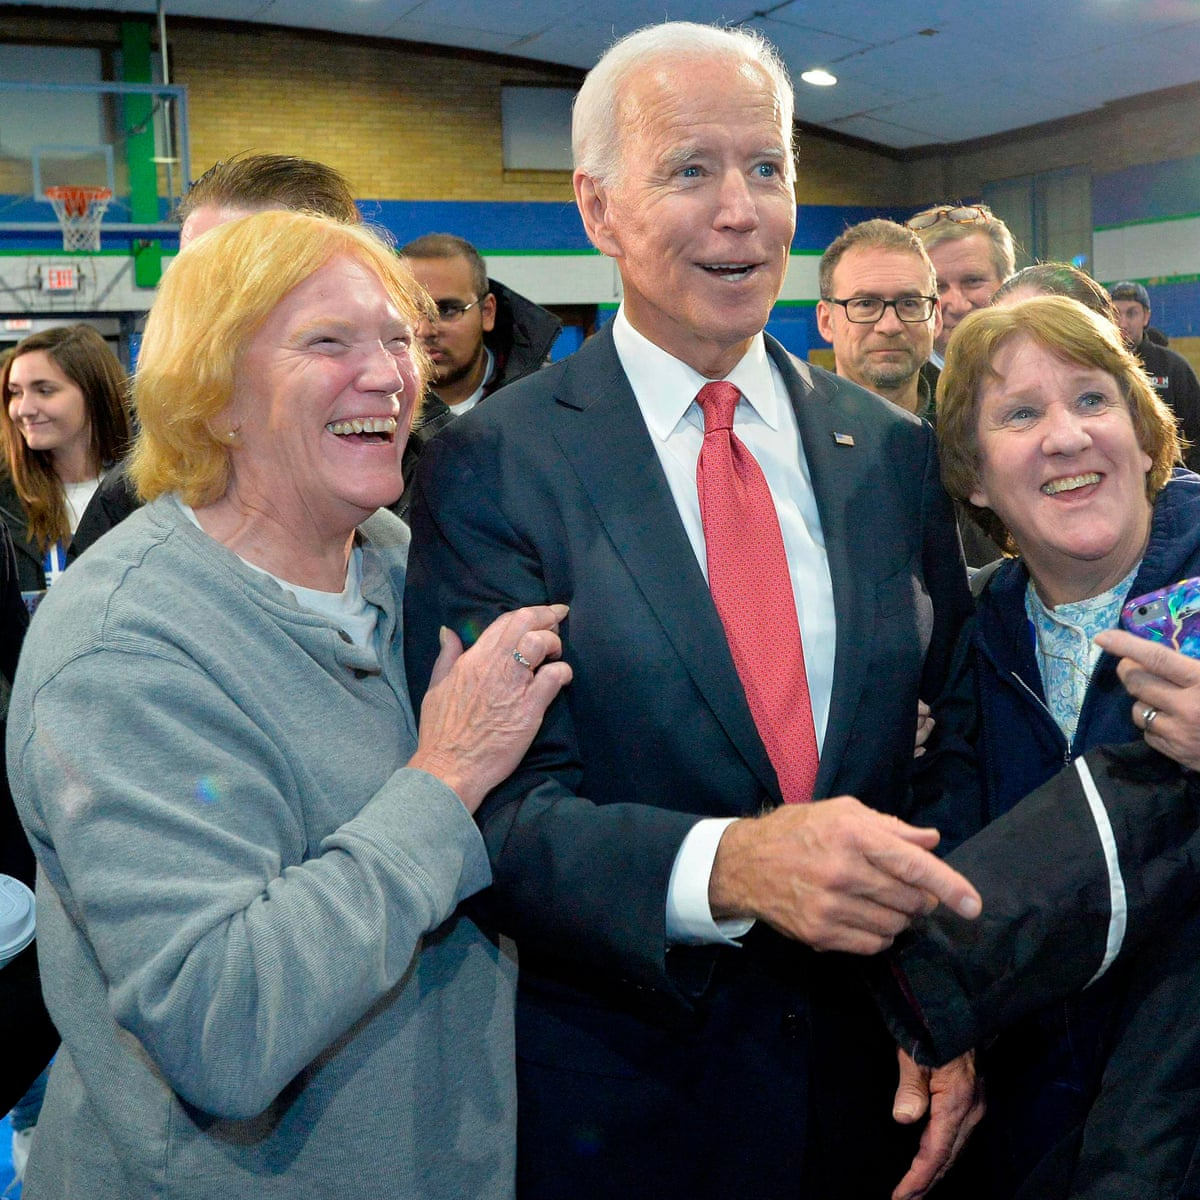 The Quest To Find Joe Biden S Young Supporters Do They Actually Exist Joe Biden The Guardian